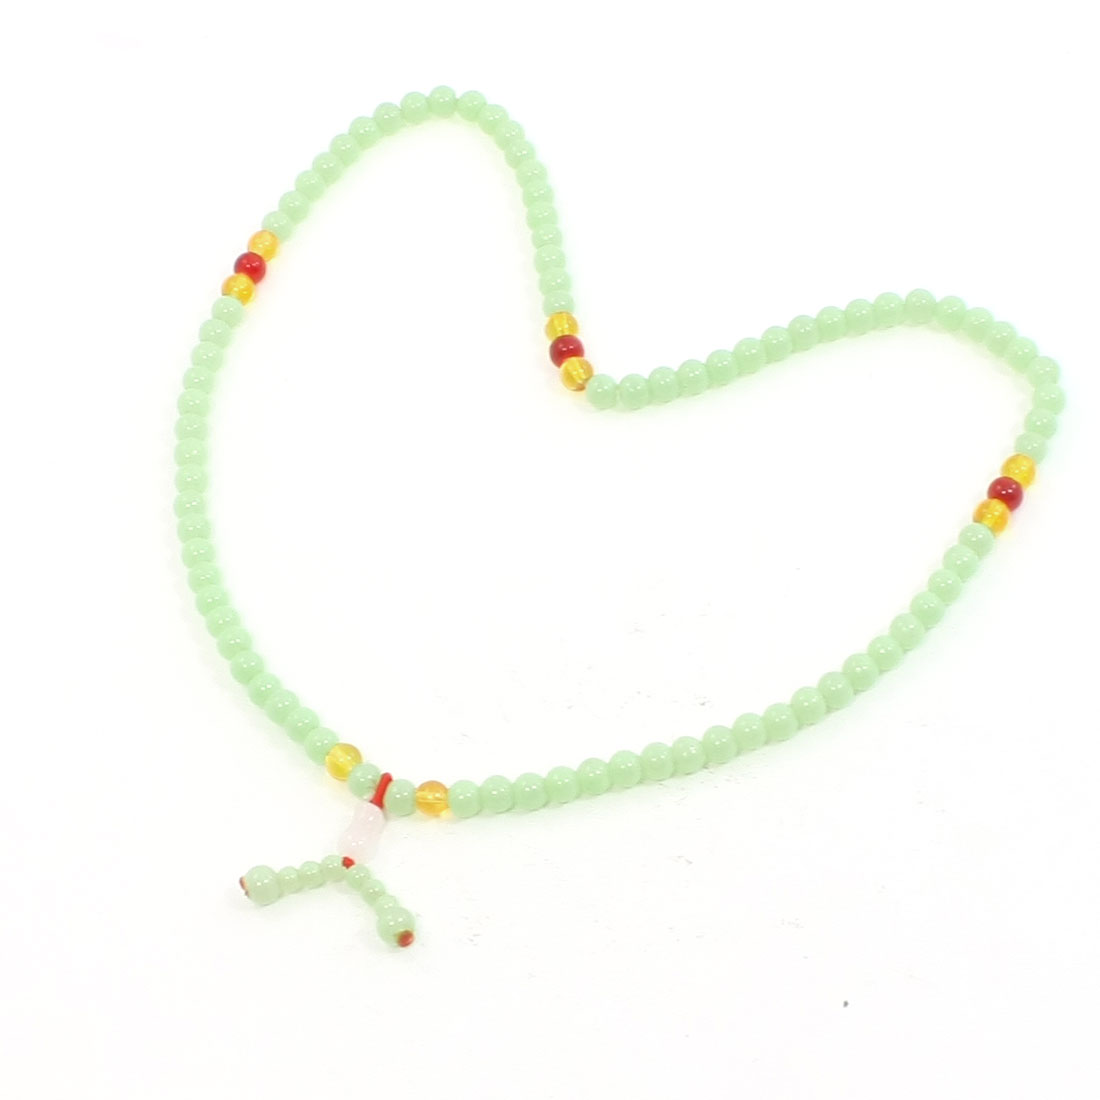 Light Green Faux Jade Plastic Beads Decor Stretchy Necklace